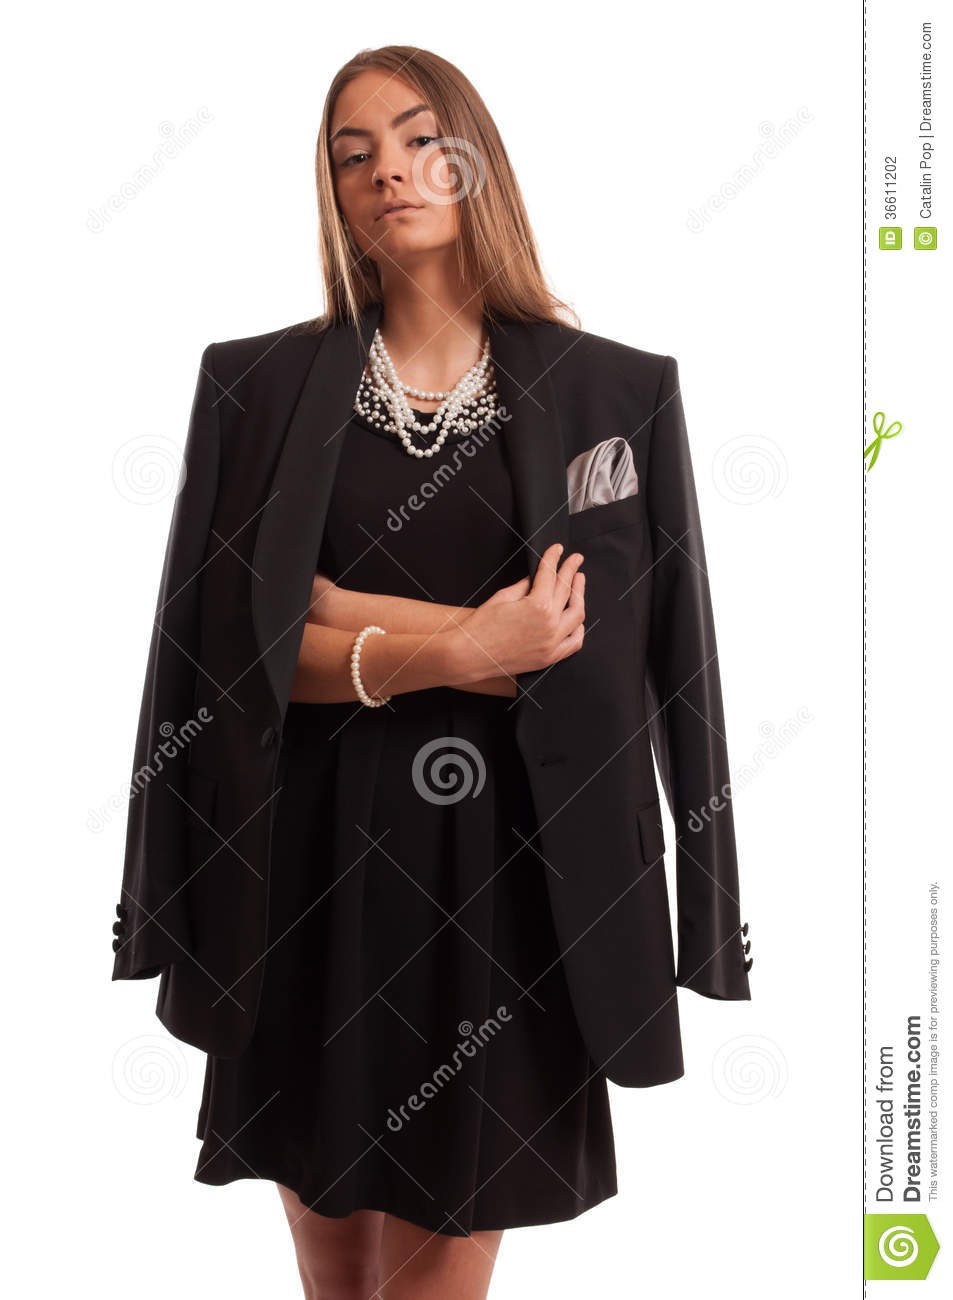 bfbcb416531 Beautiful brown haired young woman having a confident attitude wearing a black  dress and jacket with pearls around her neck